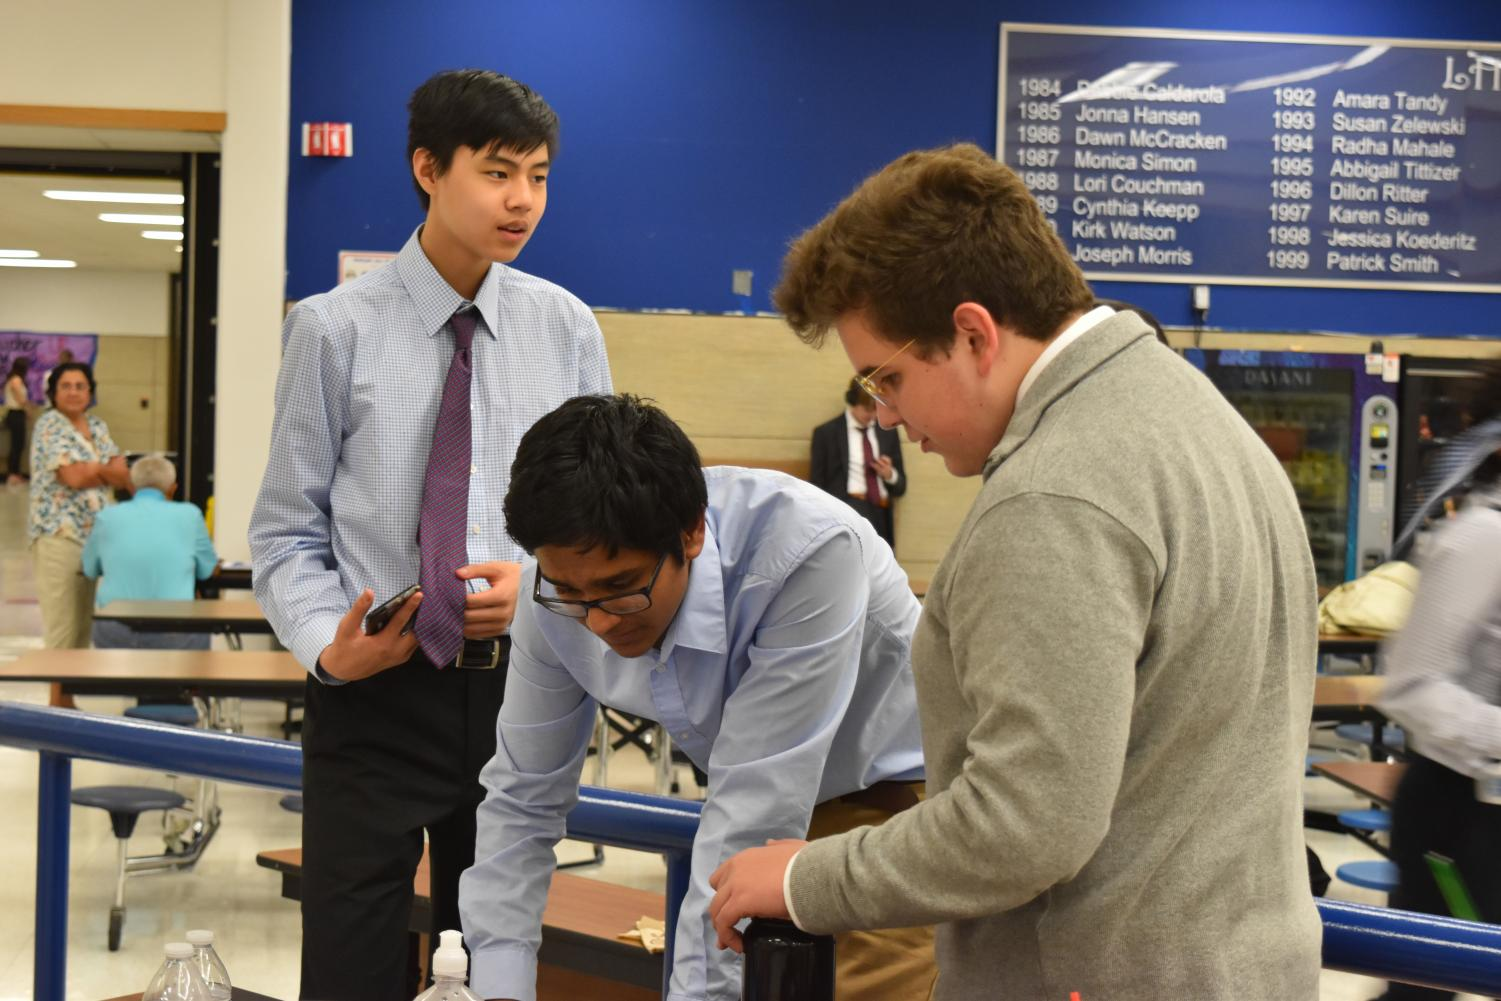 In+between+rounds%2C+Anoop+Rachakonda+%2722+shows+Nathan+Fang+%2722+and+Bryce+Keeler+%2721+an+argument.+Photo+courtesy+of+WHS+Speech+and+Debate.